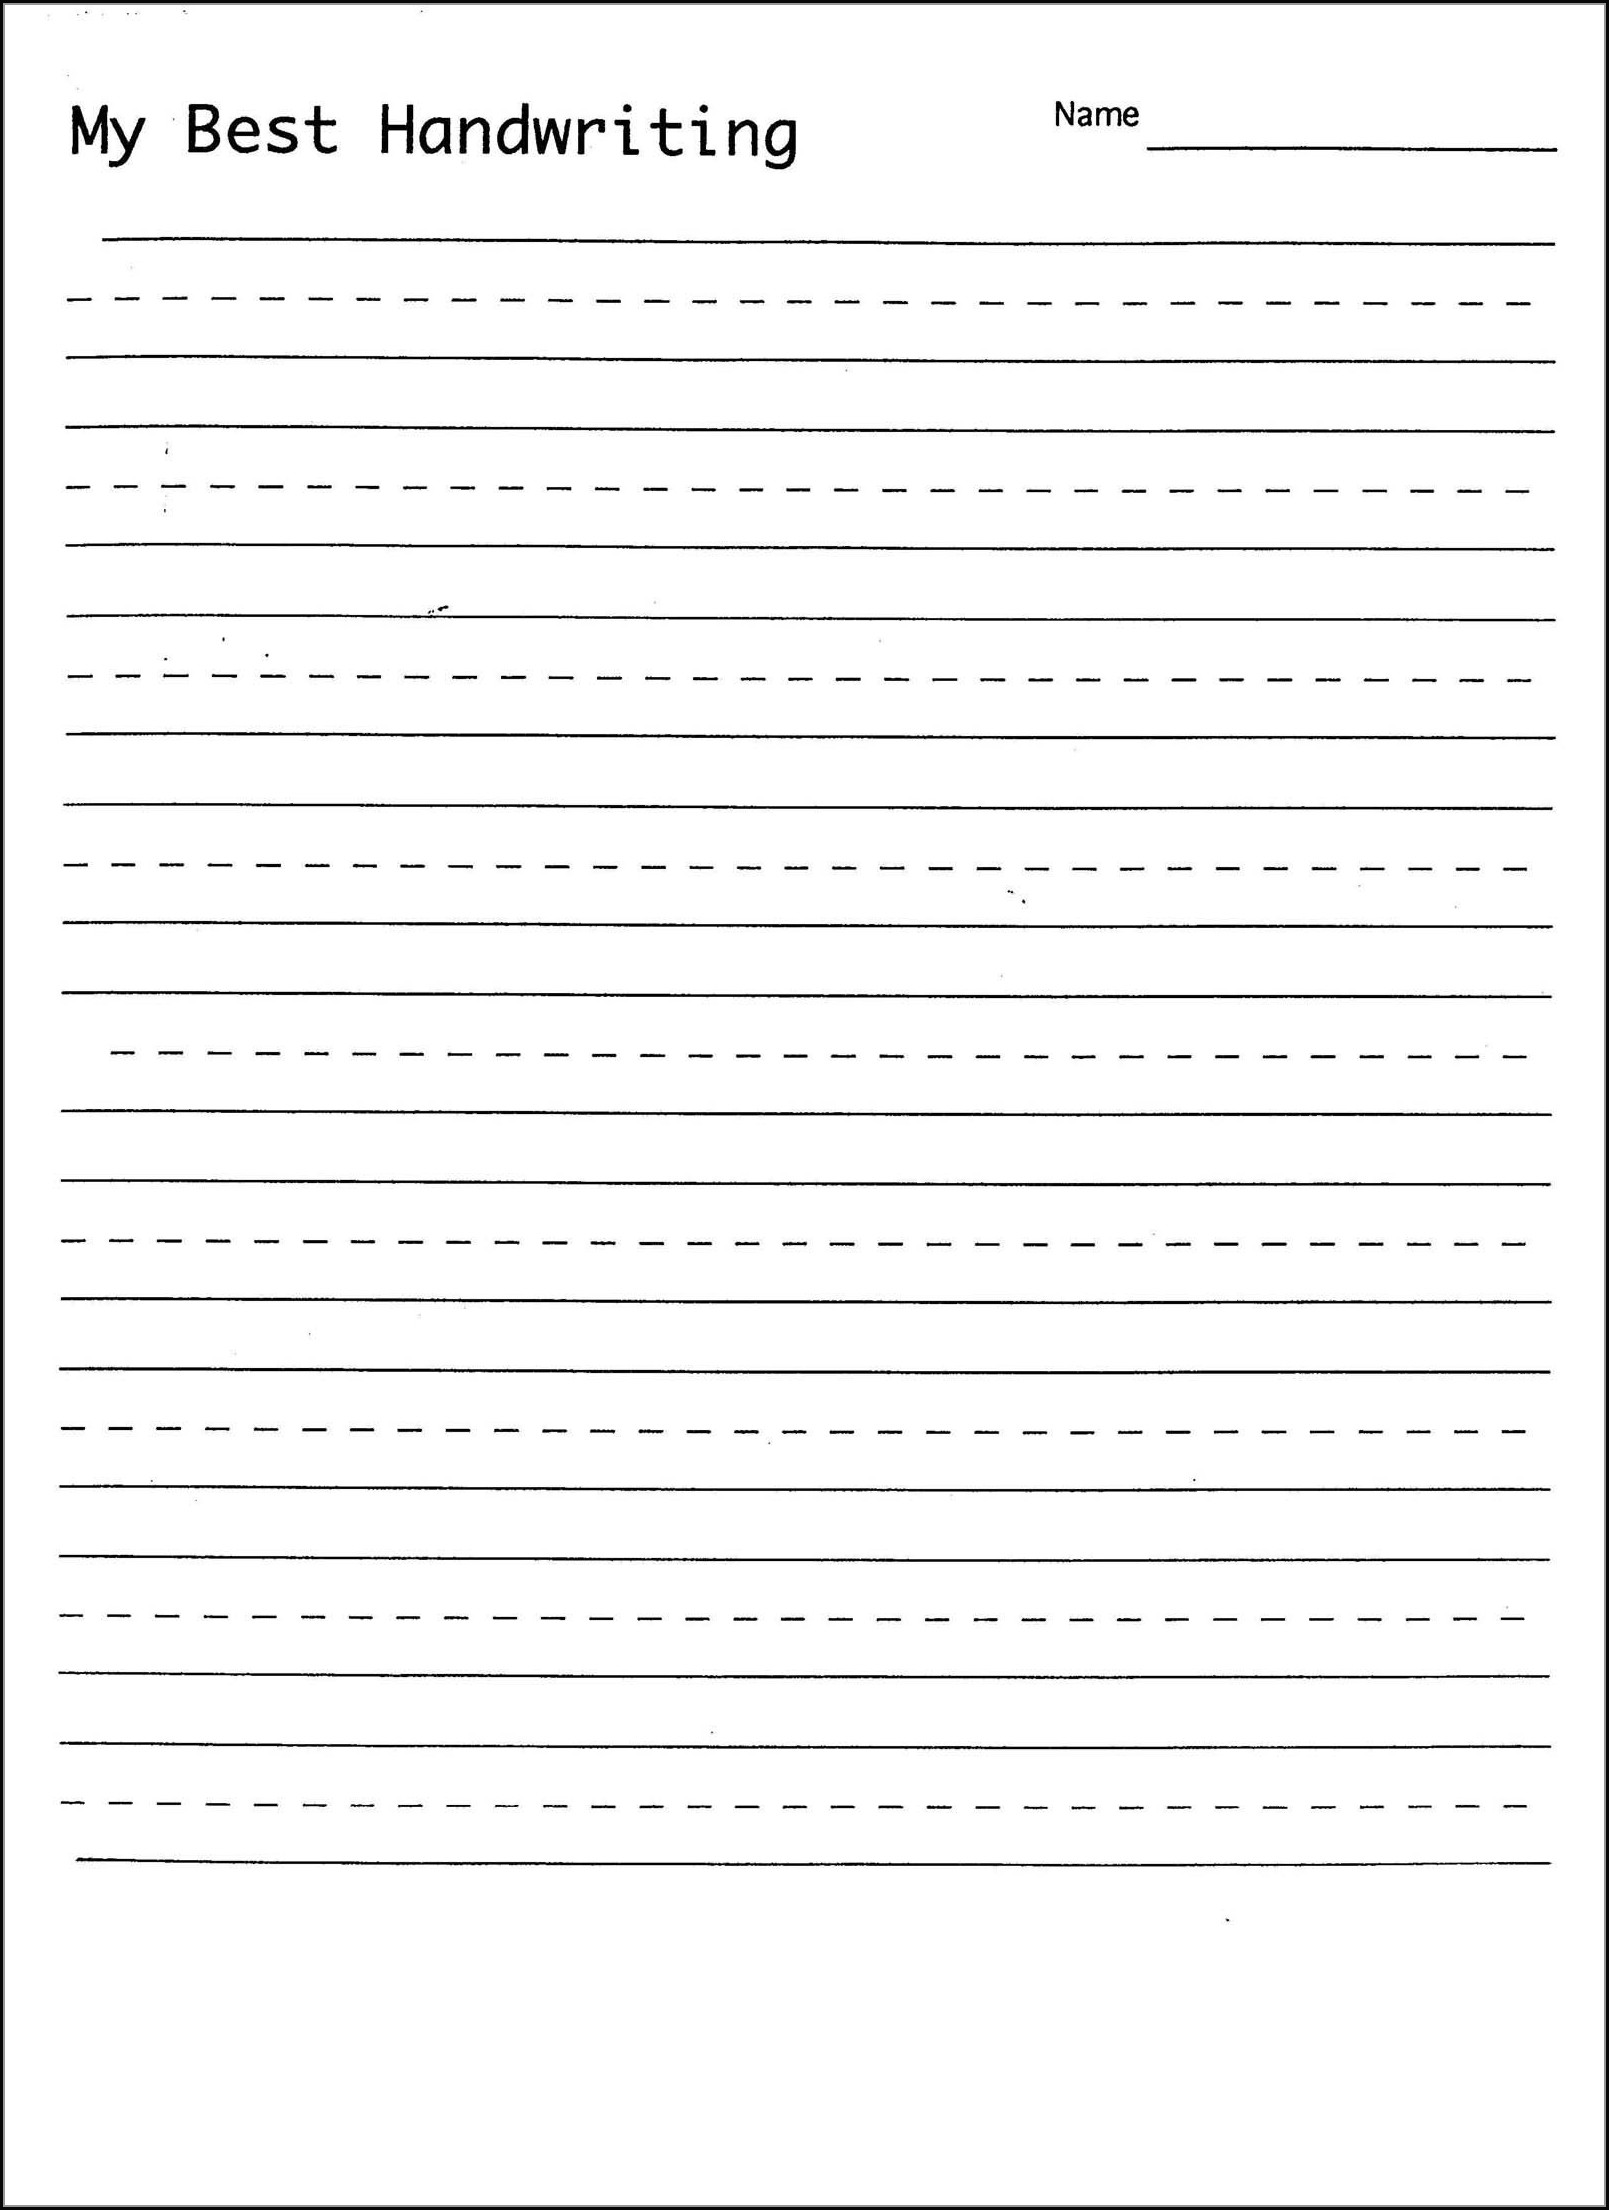 Blank Cursive Writing Practice Sheets For Adults